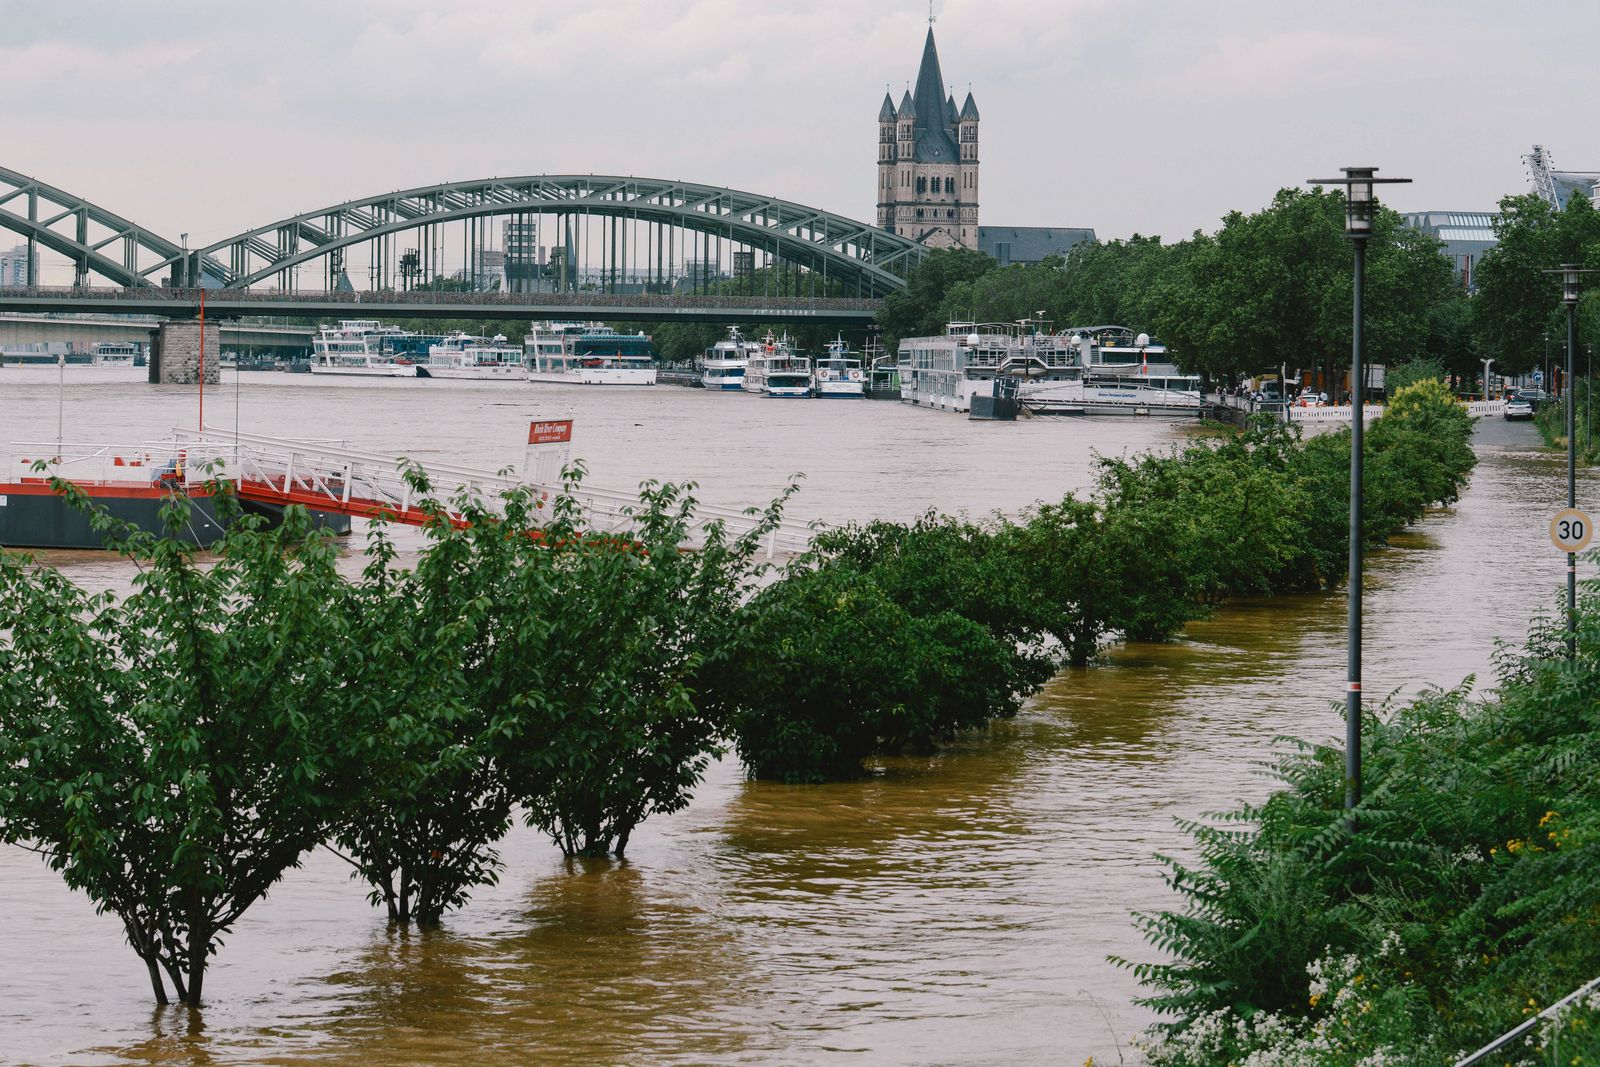 NRW, Hochwasser am Rhein in Köln Flood In Cologne Continues flooding scene is seen from Rhine river in Cologne, Germany